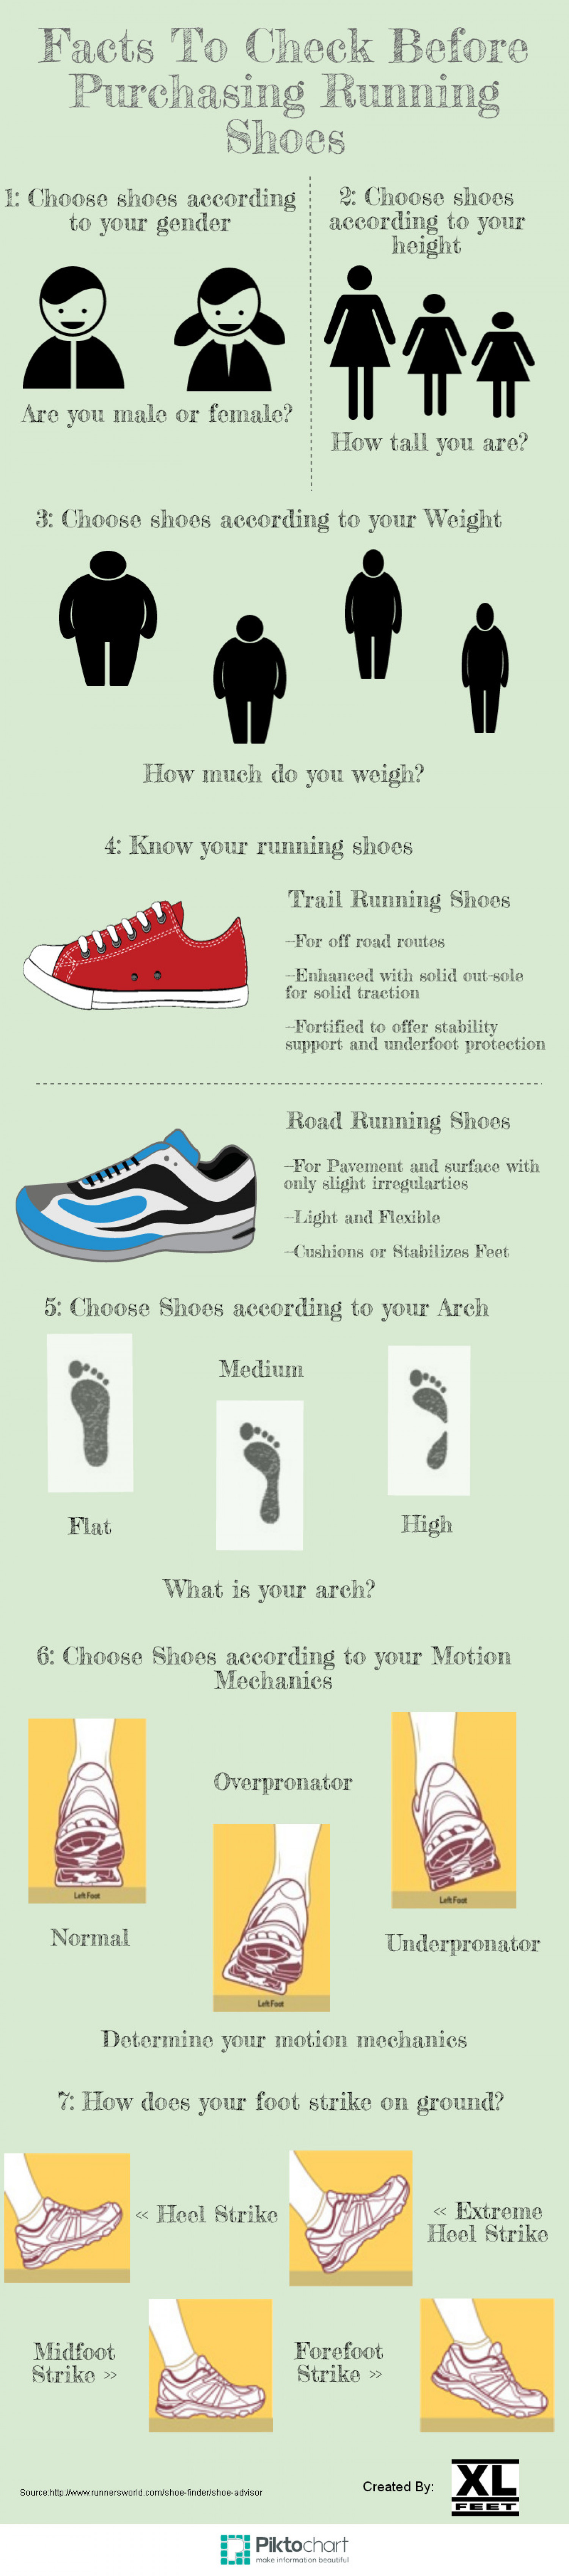 Facts to Know Before Buying Running Shoes! Infographic